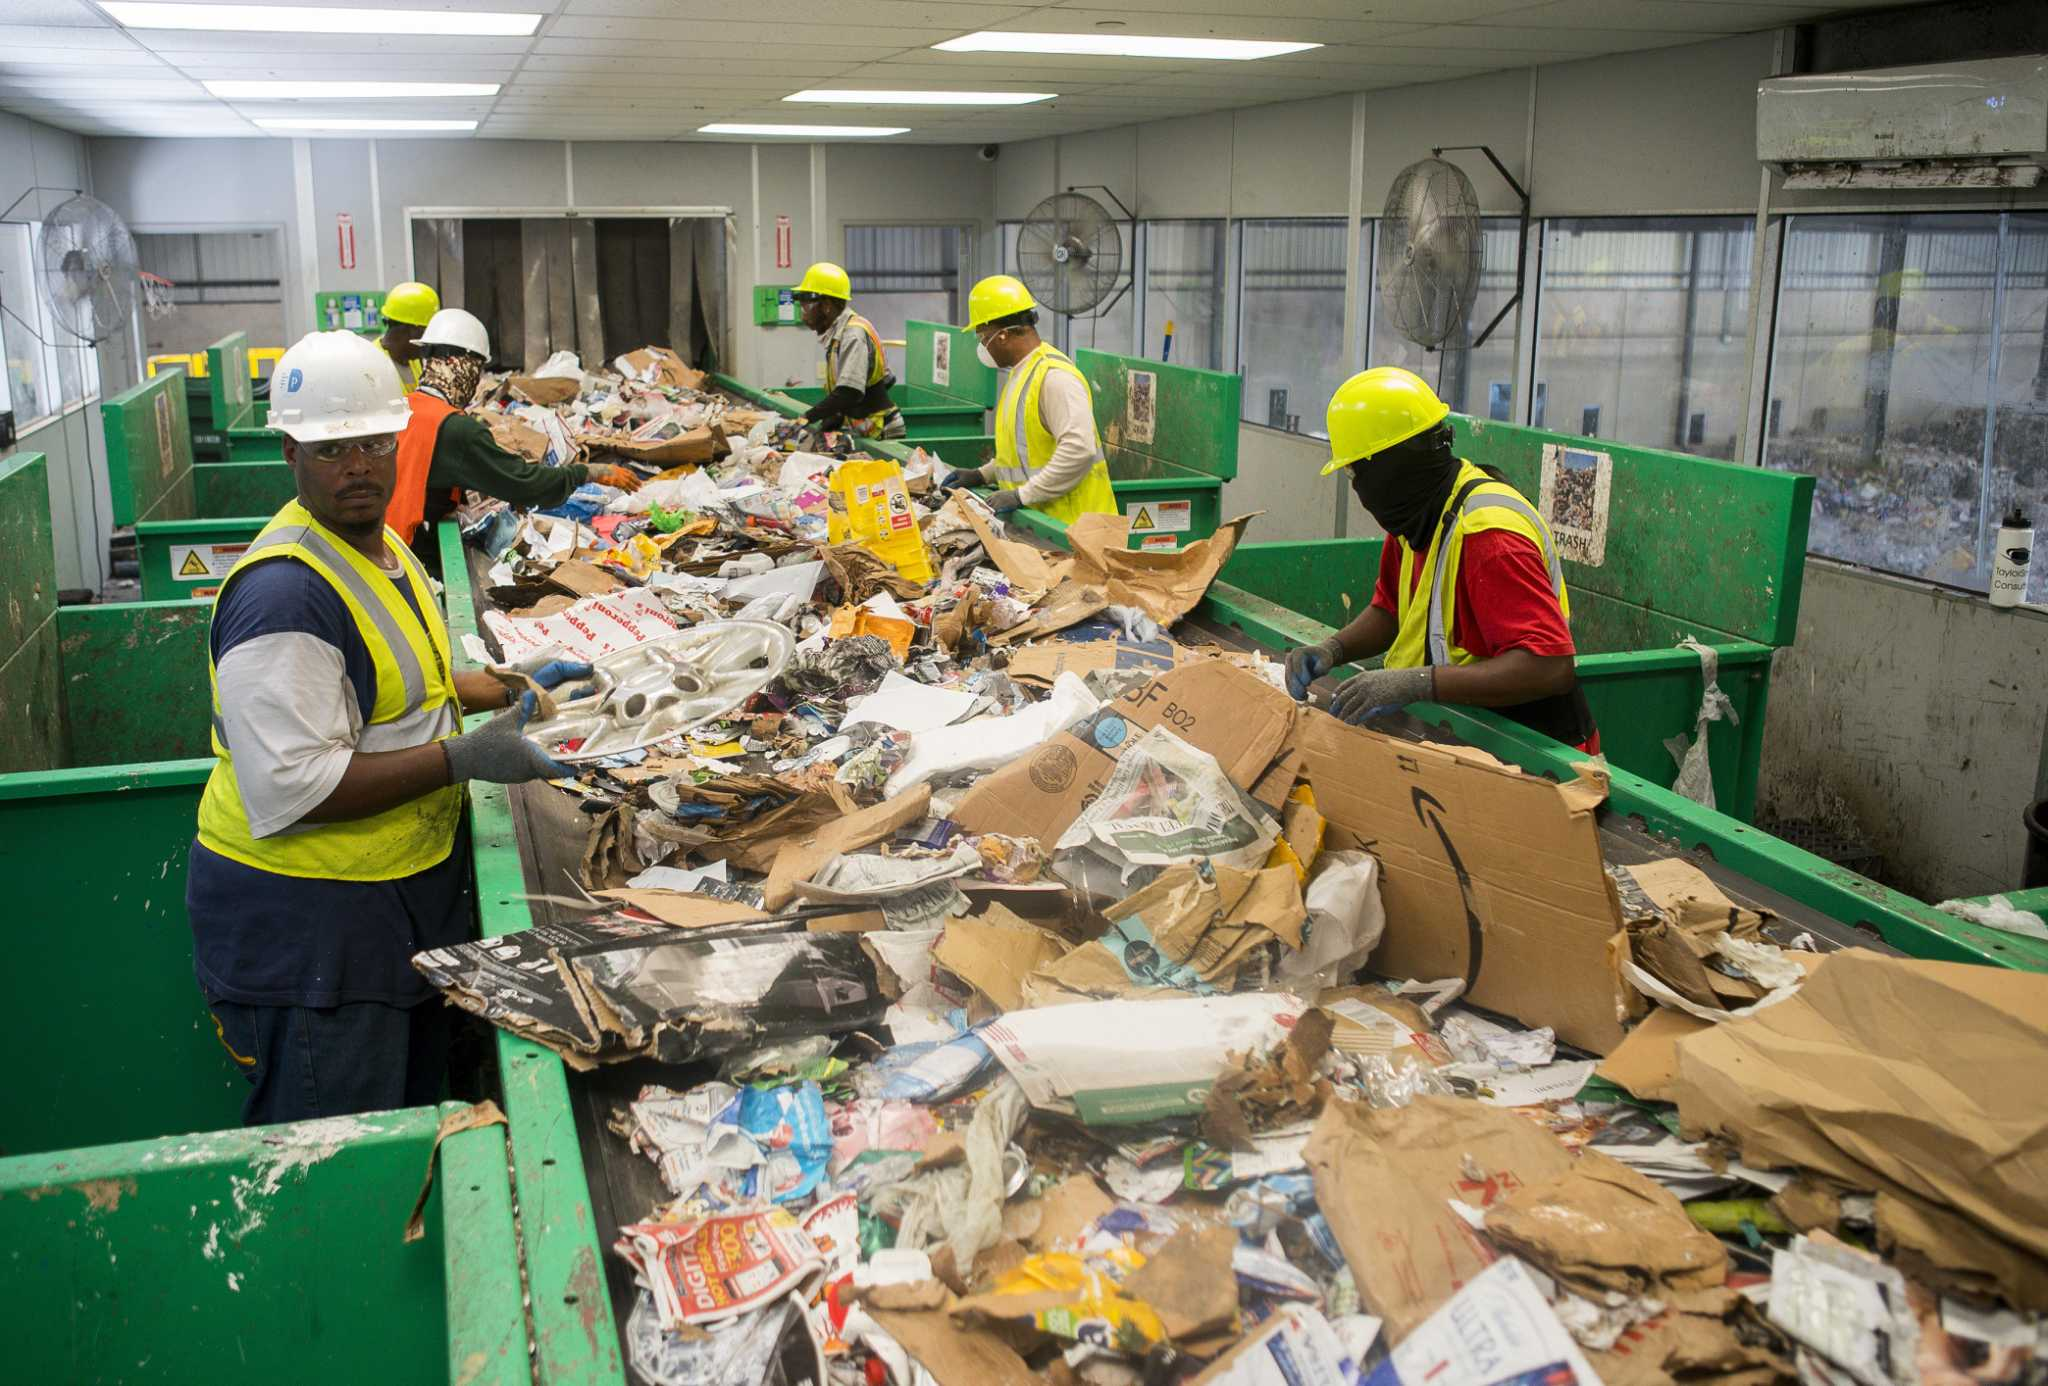 How do you recycle in Houston?